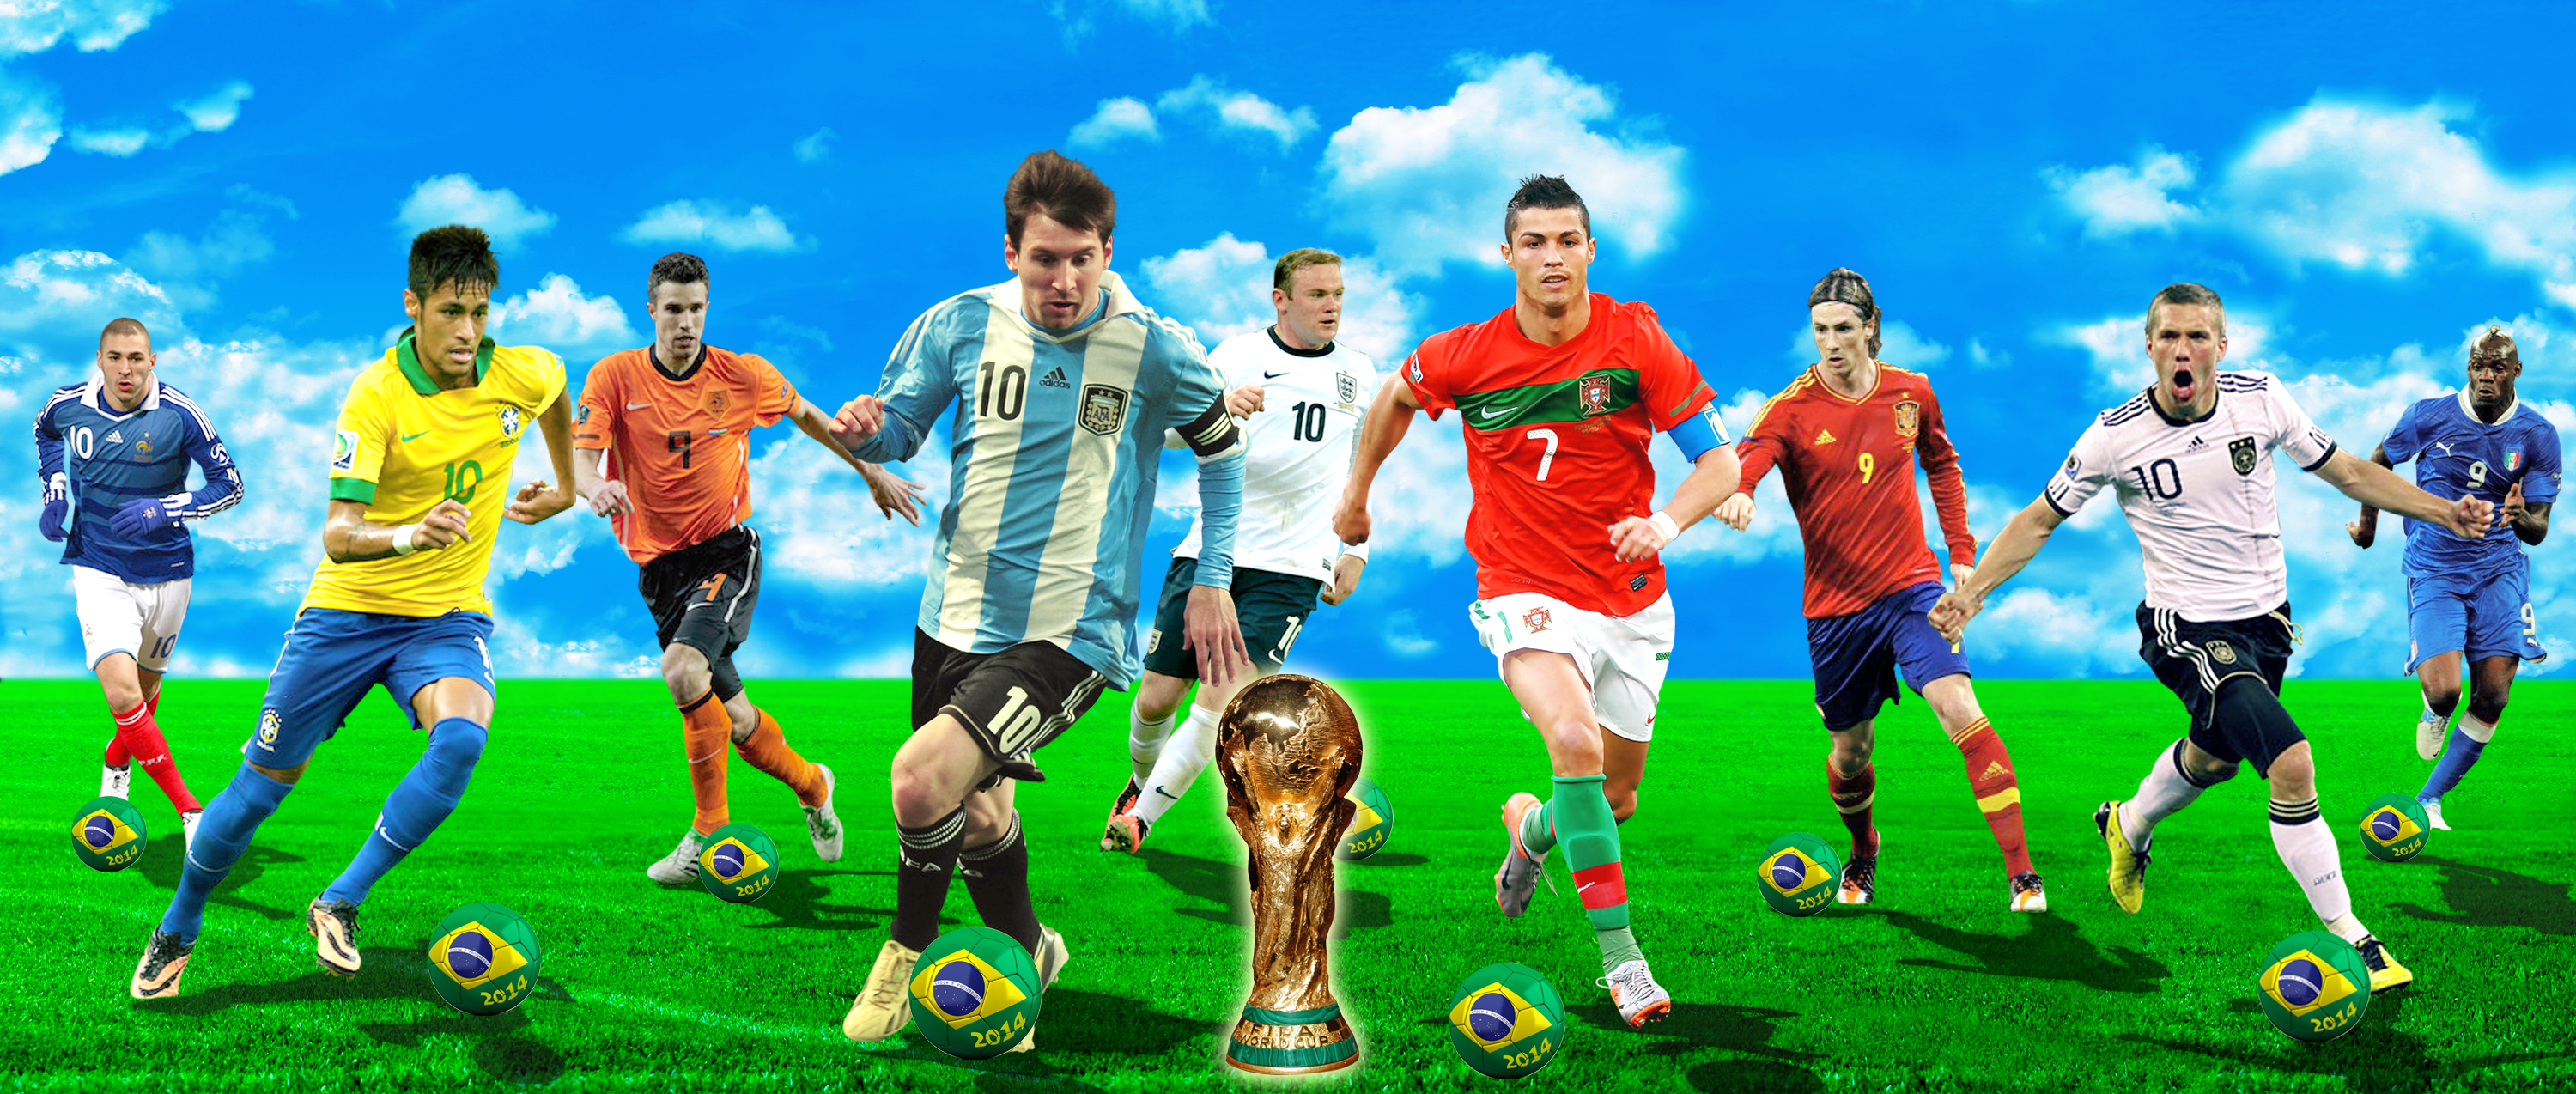 Soccer Player Wallpapers